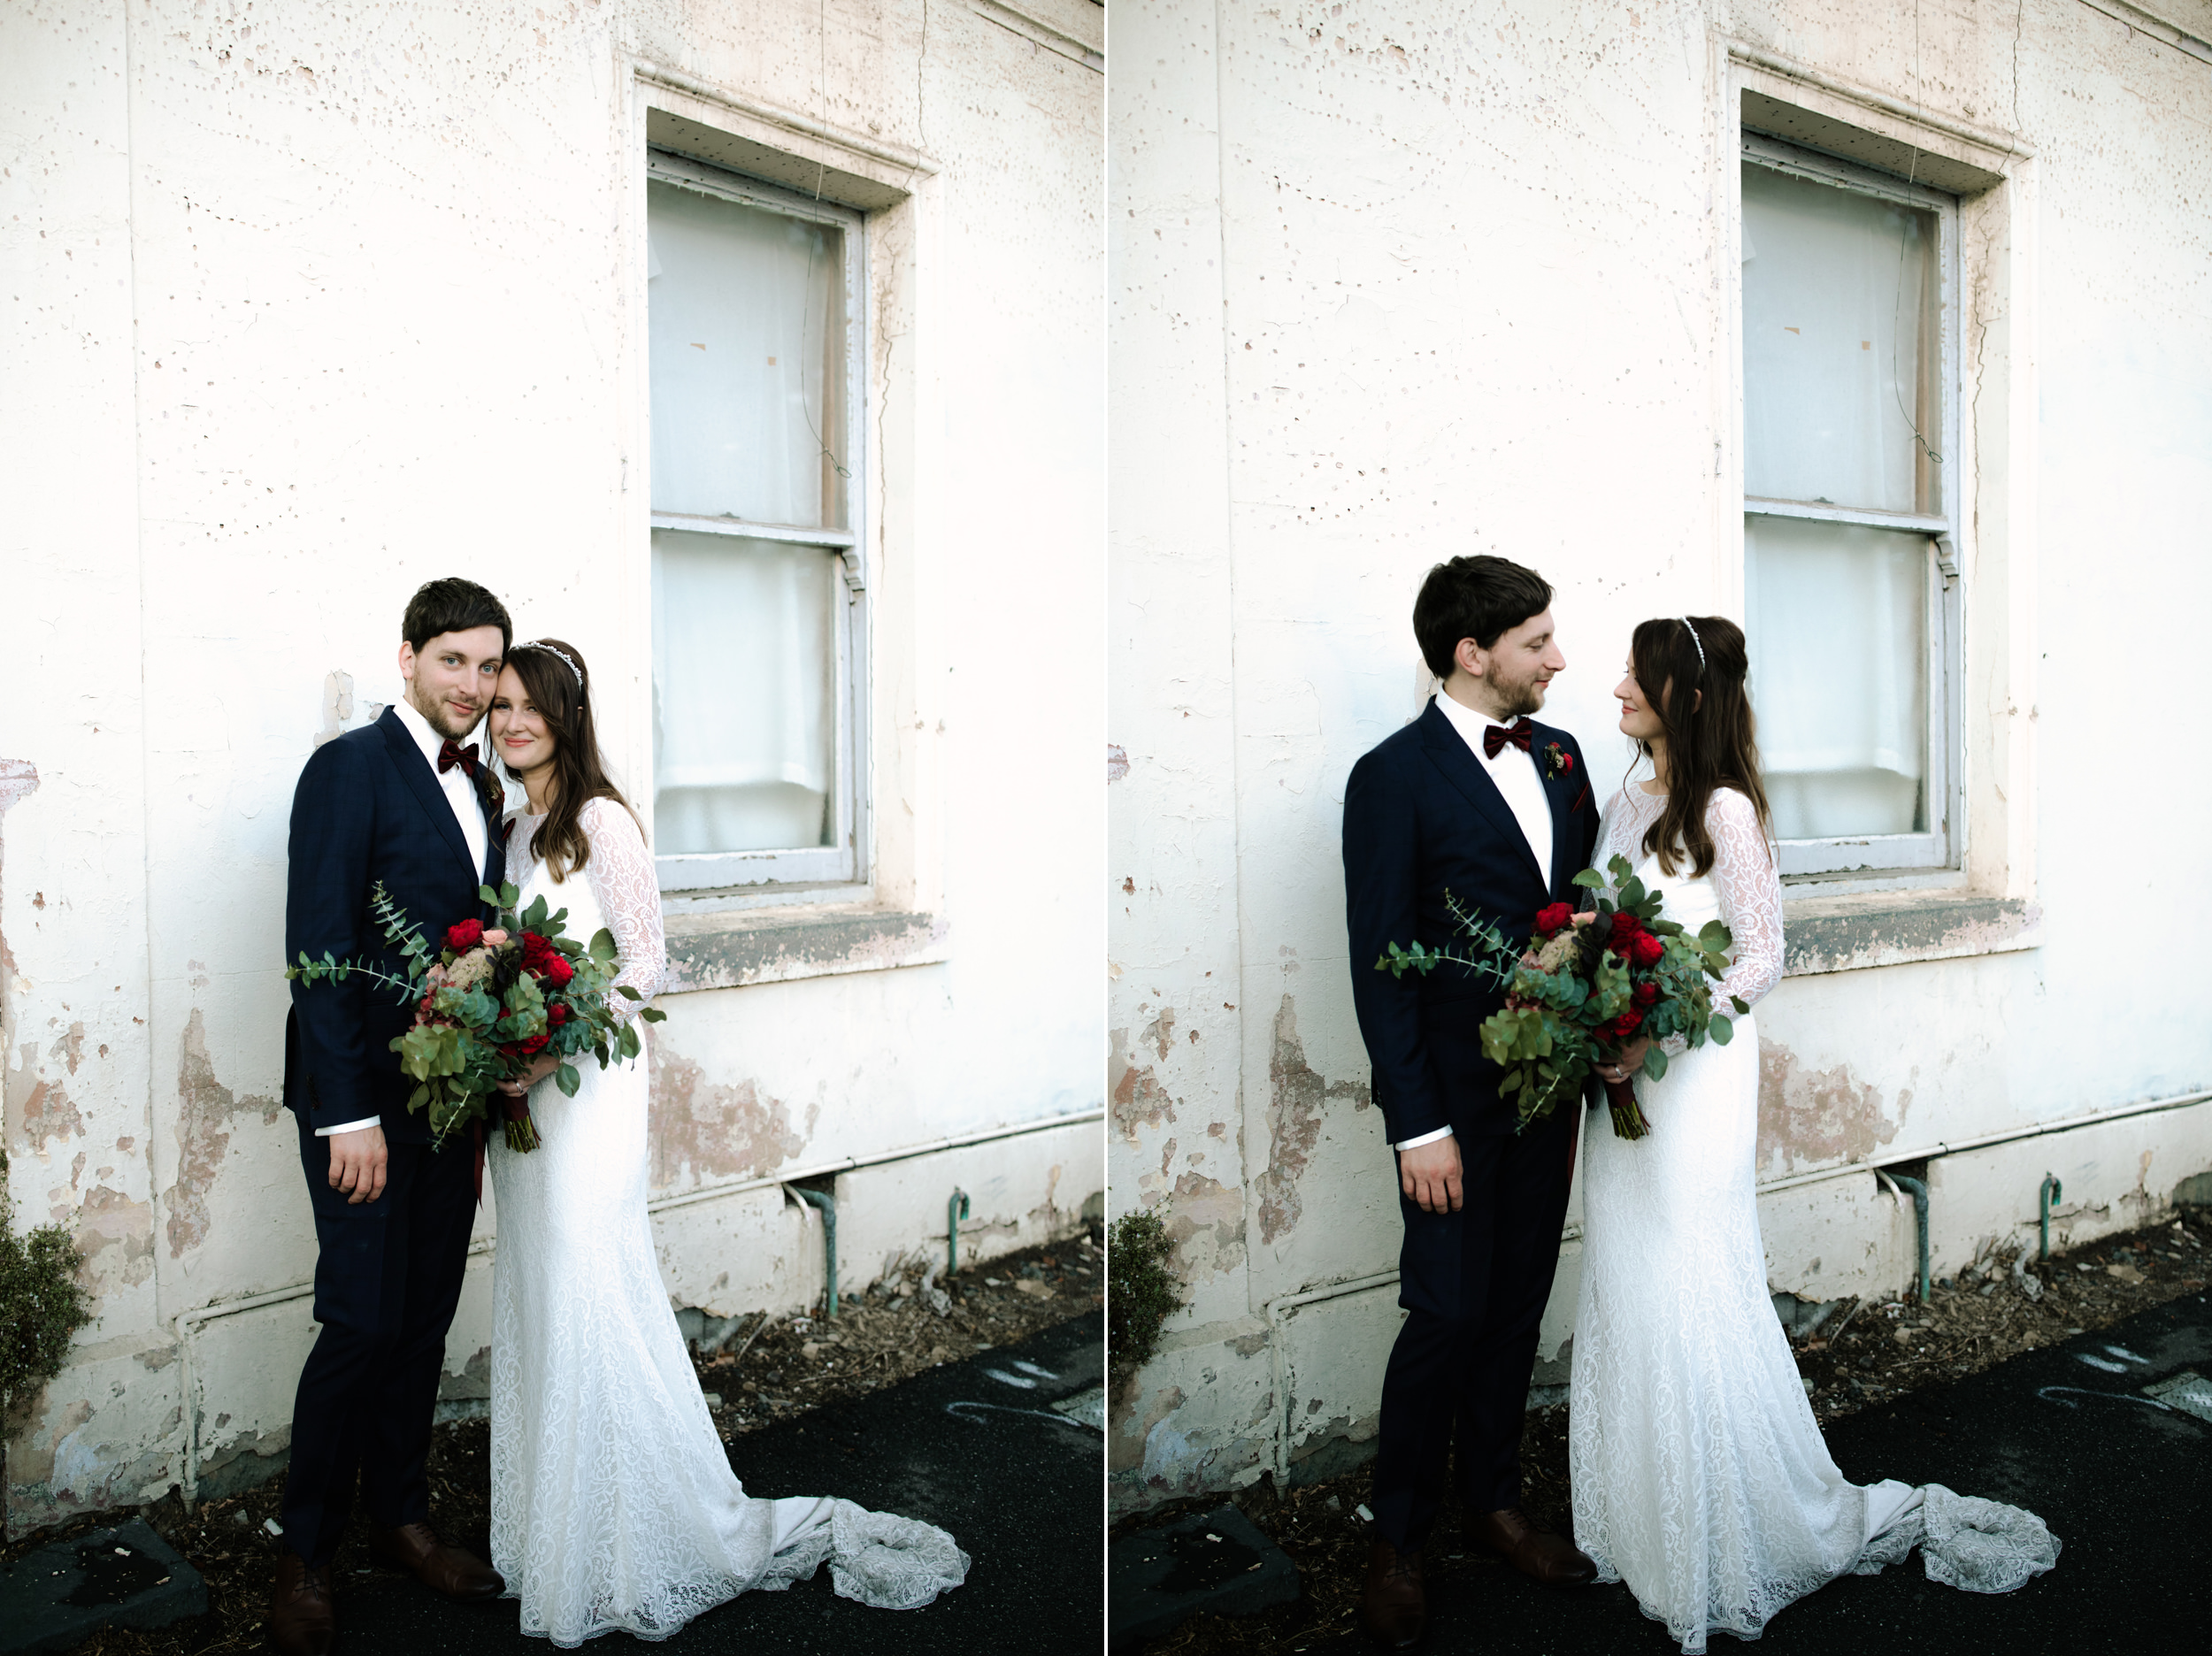 I_Got_You_Babe_Weddings_Emily_Matt_Rupert_Glasshaus_Melbourne0153.JPG